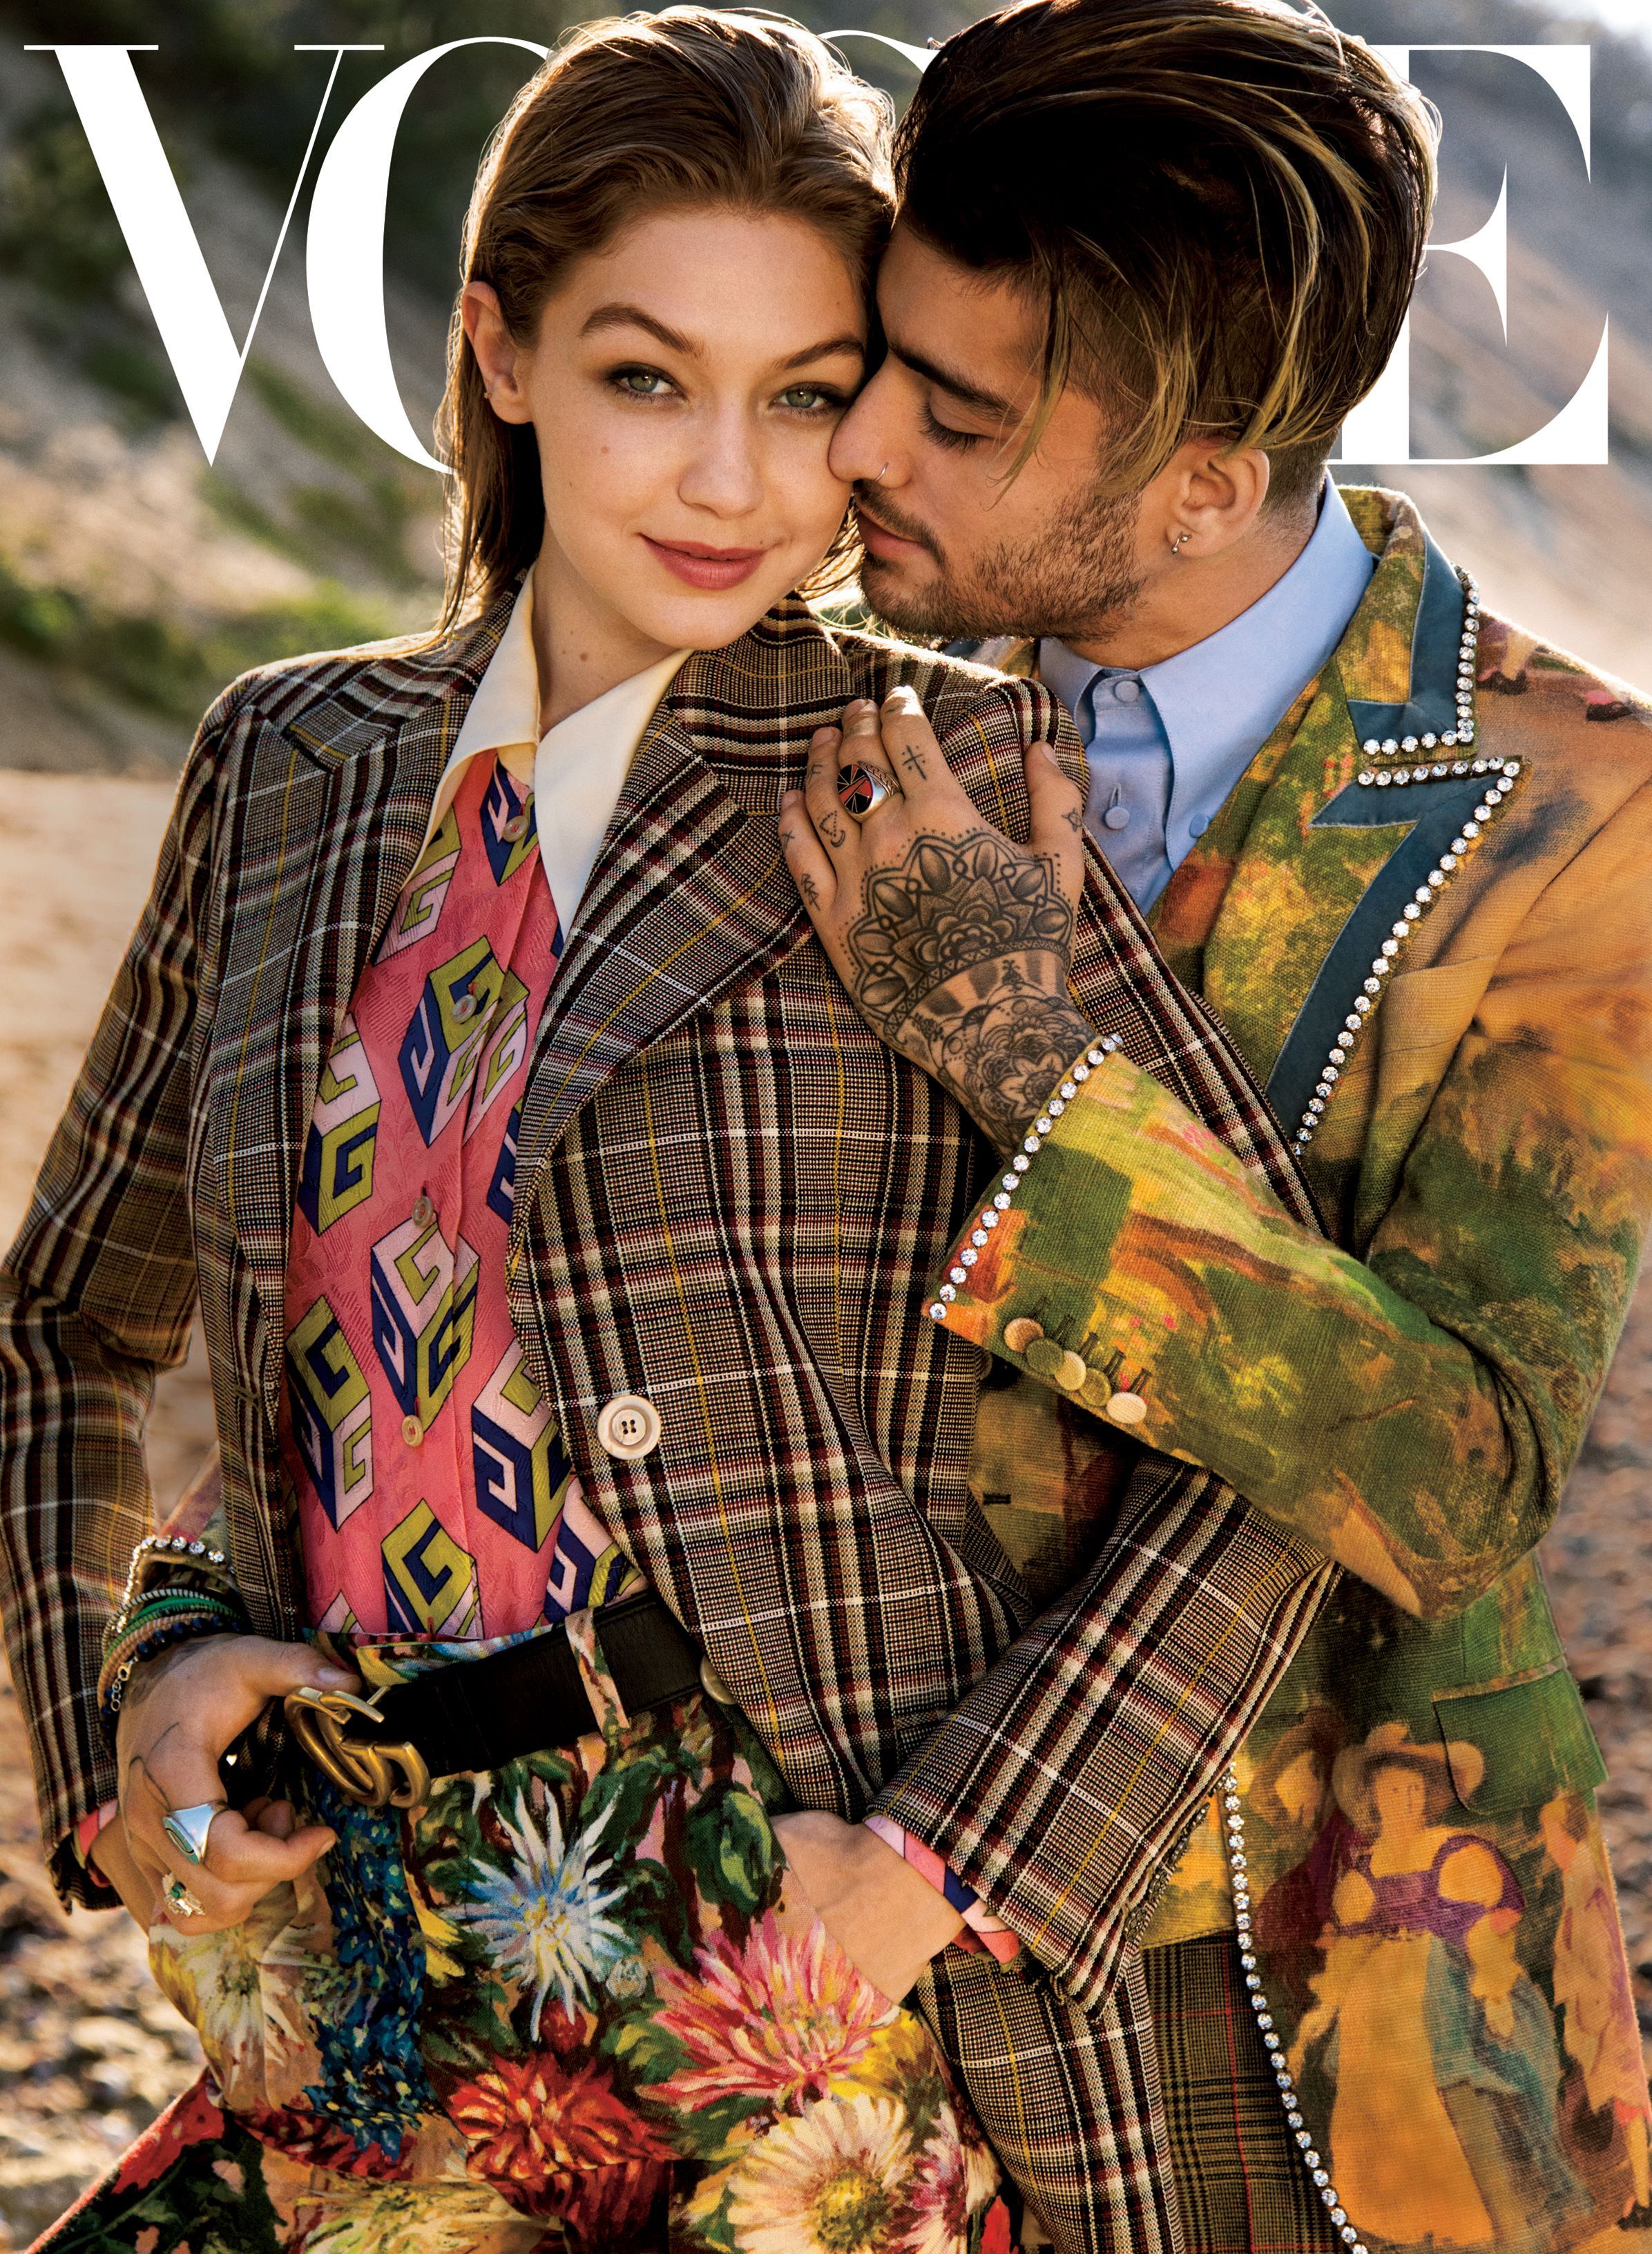 46cf1039f Gucci Editorials On the cover of Vogue Magazine's August issue, Gigi Hadid  and Zayn Malik wearing looks from the Gucci Fall Winter 2017 collection by  ...